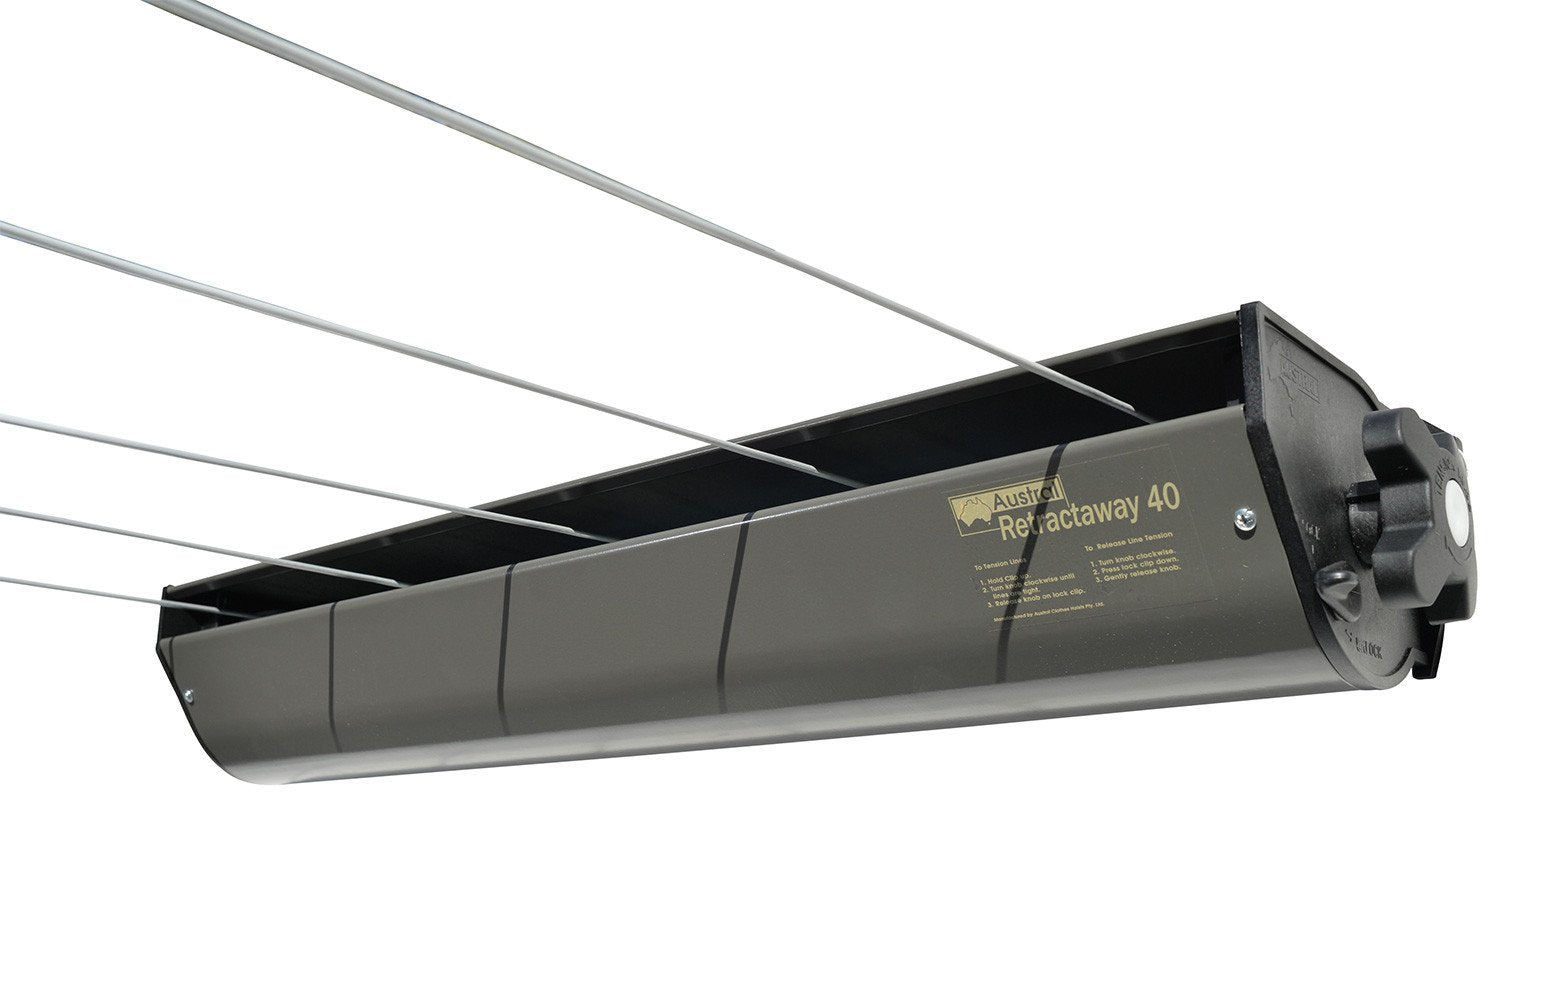 Austral Retractaway 40 Clothesline - Woodland Grey - Clotheslines Installation Australia